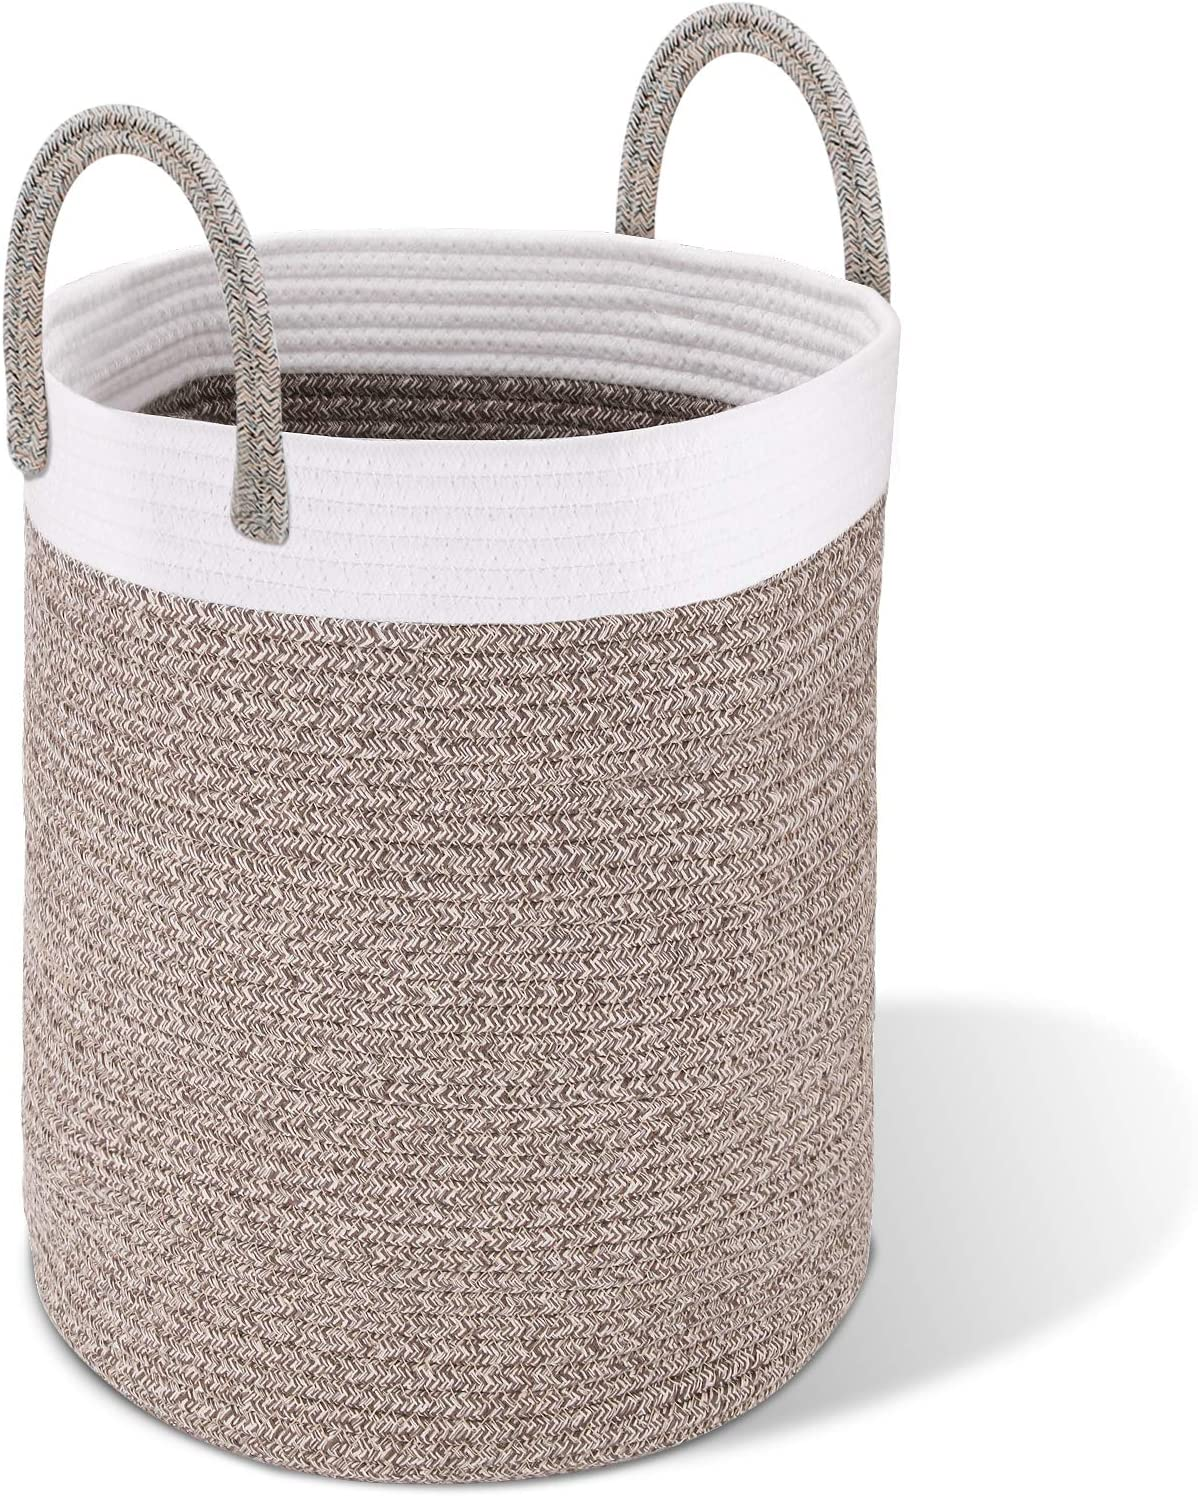 MX·HYKER Woven Rope Laundry Basket Tall–Decorative Storage Laundry Hamper 100% Natural Cotton Storage Basket, Rope Basket, Kid Toy Basket Storage Bin,Blanket Basket Living Room19X15